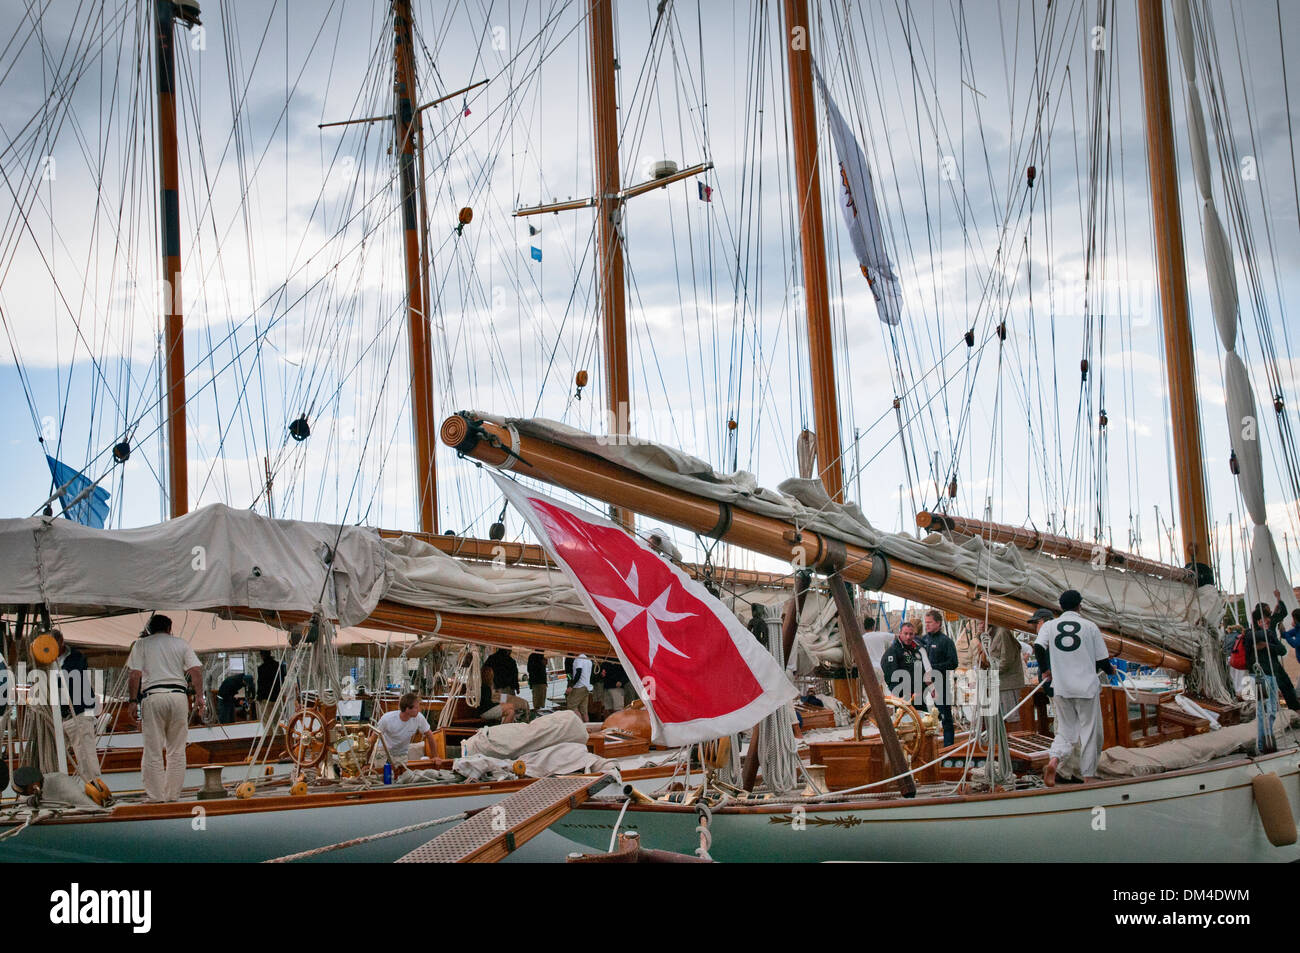 Yachtsmen   prepare the yacht for competitions, Antibes, southeastern France - Stock Image